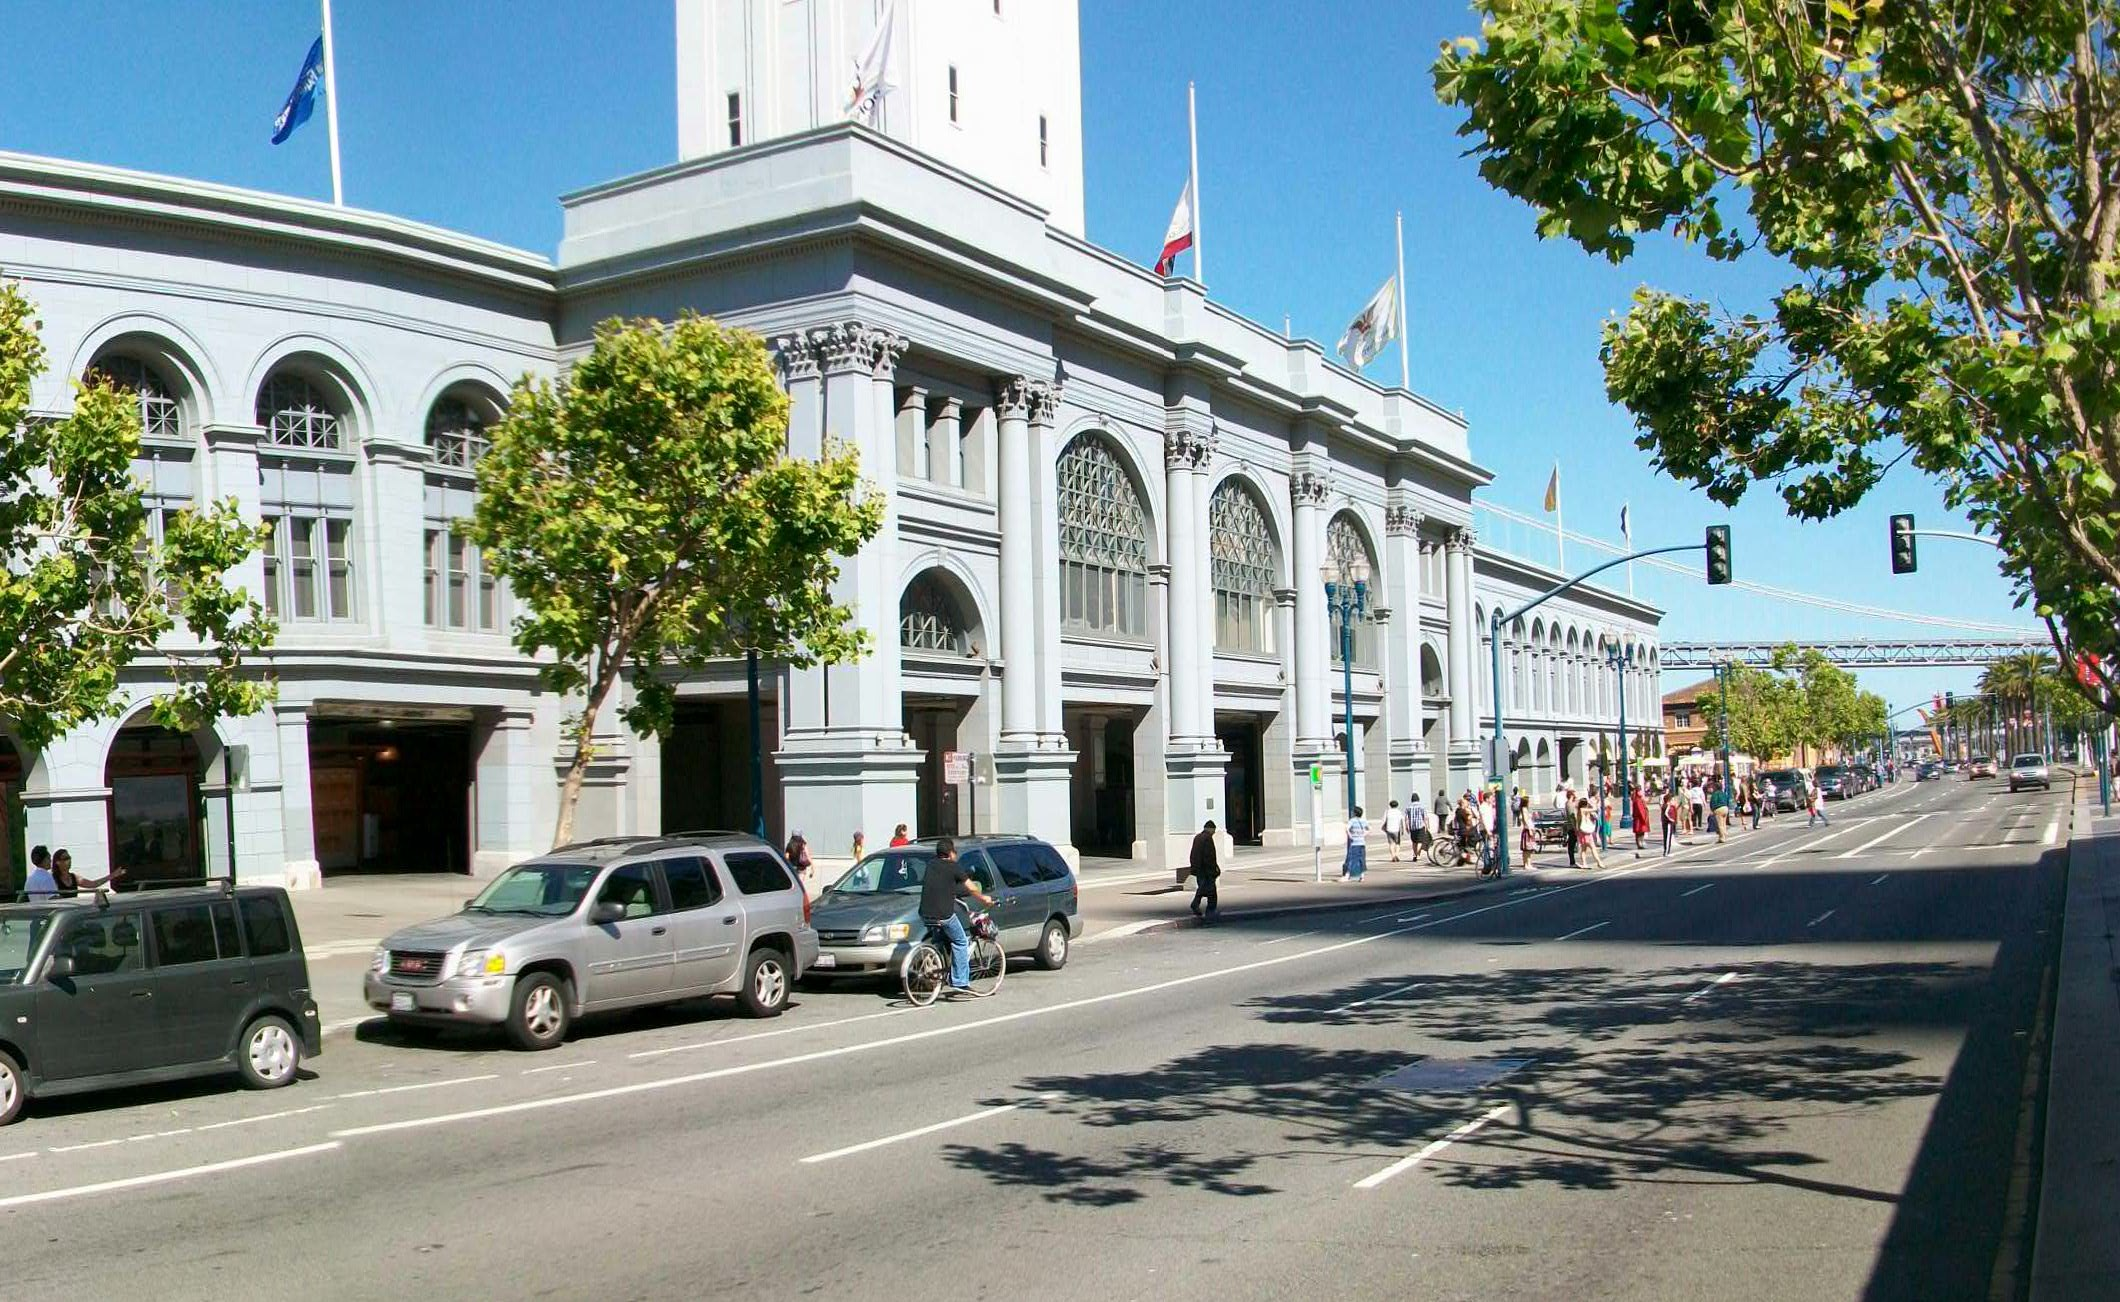 Once covered by a double-decker highway, the Embarcadero in San Francisco is now a thriving multimodal boulevard with a vibrant shopping mall in the previously obscured and historic Ferry Building. (Kevin Proft/ecoRI News)